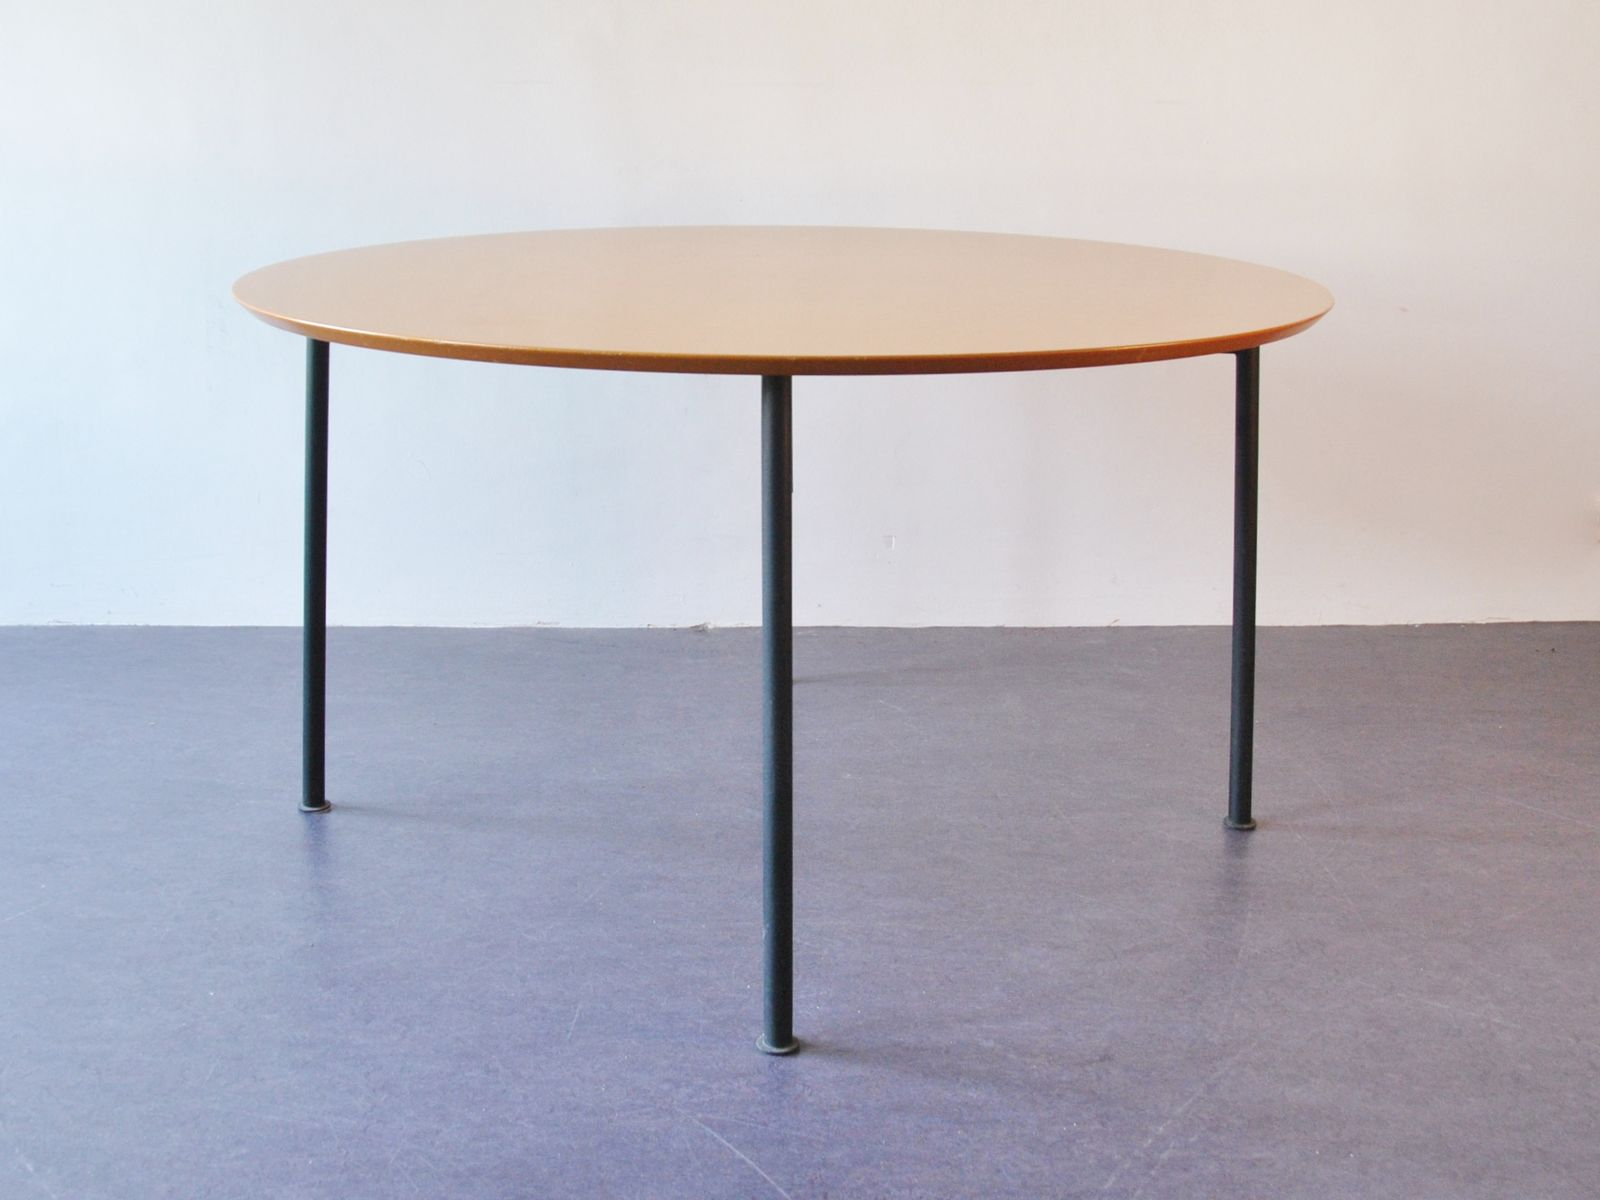 nina freed dining table by philippe starck 1983 for sale. Black Bedroom Furniture Sets. Home Design Ideas